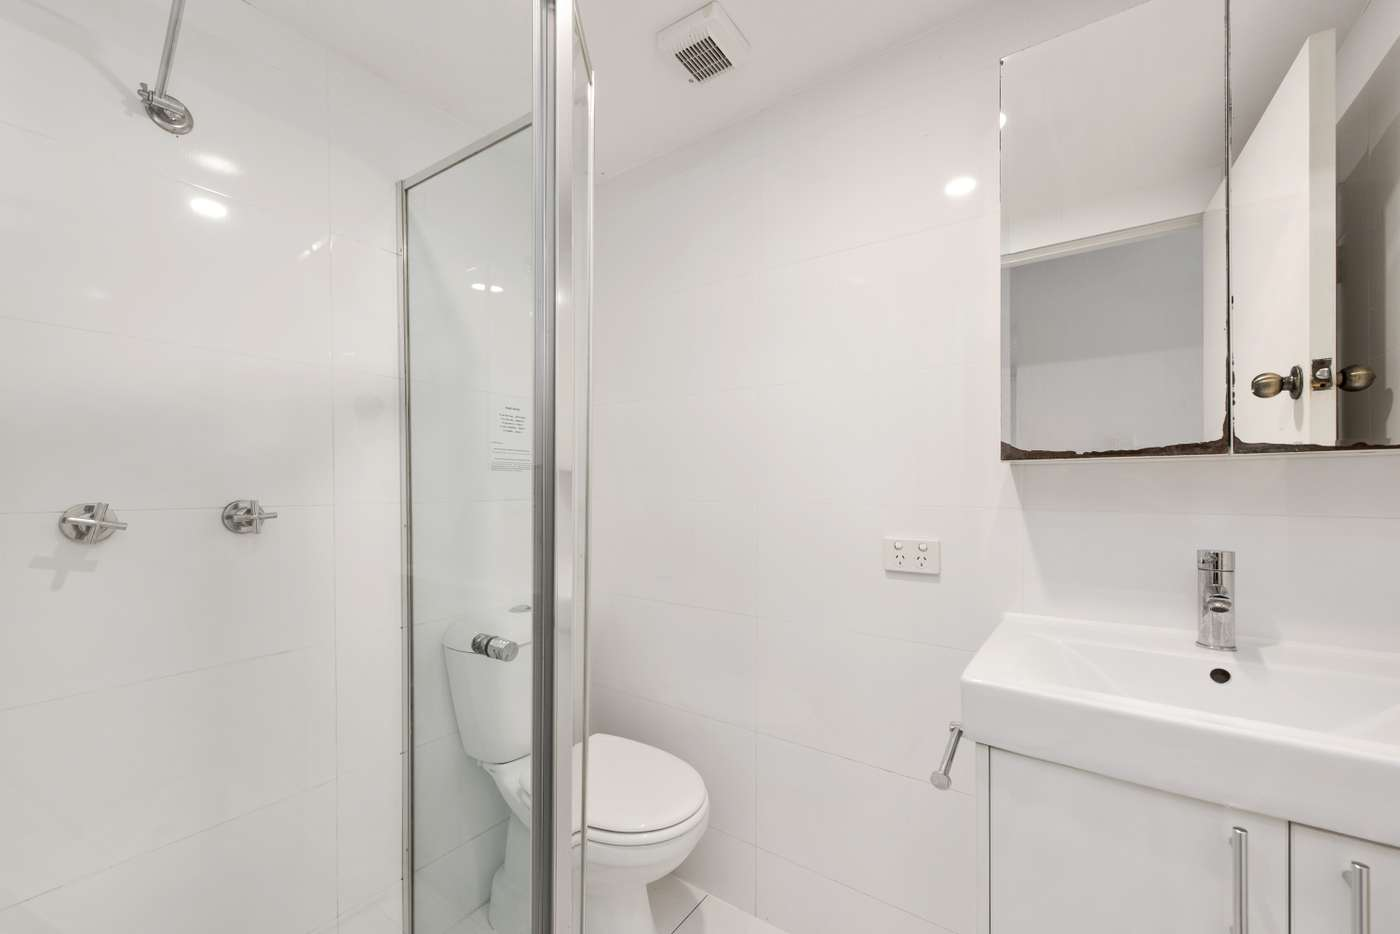 Sixth view of Homely unit listing, 3/11 Munro Street, St Lucia QLD 4067